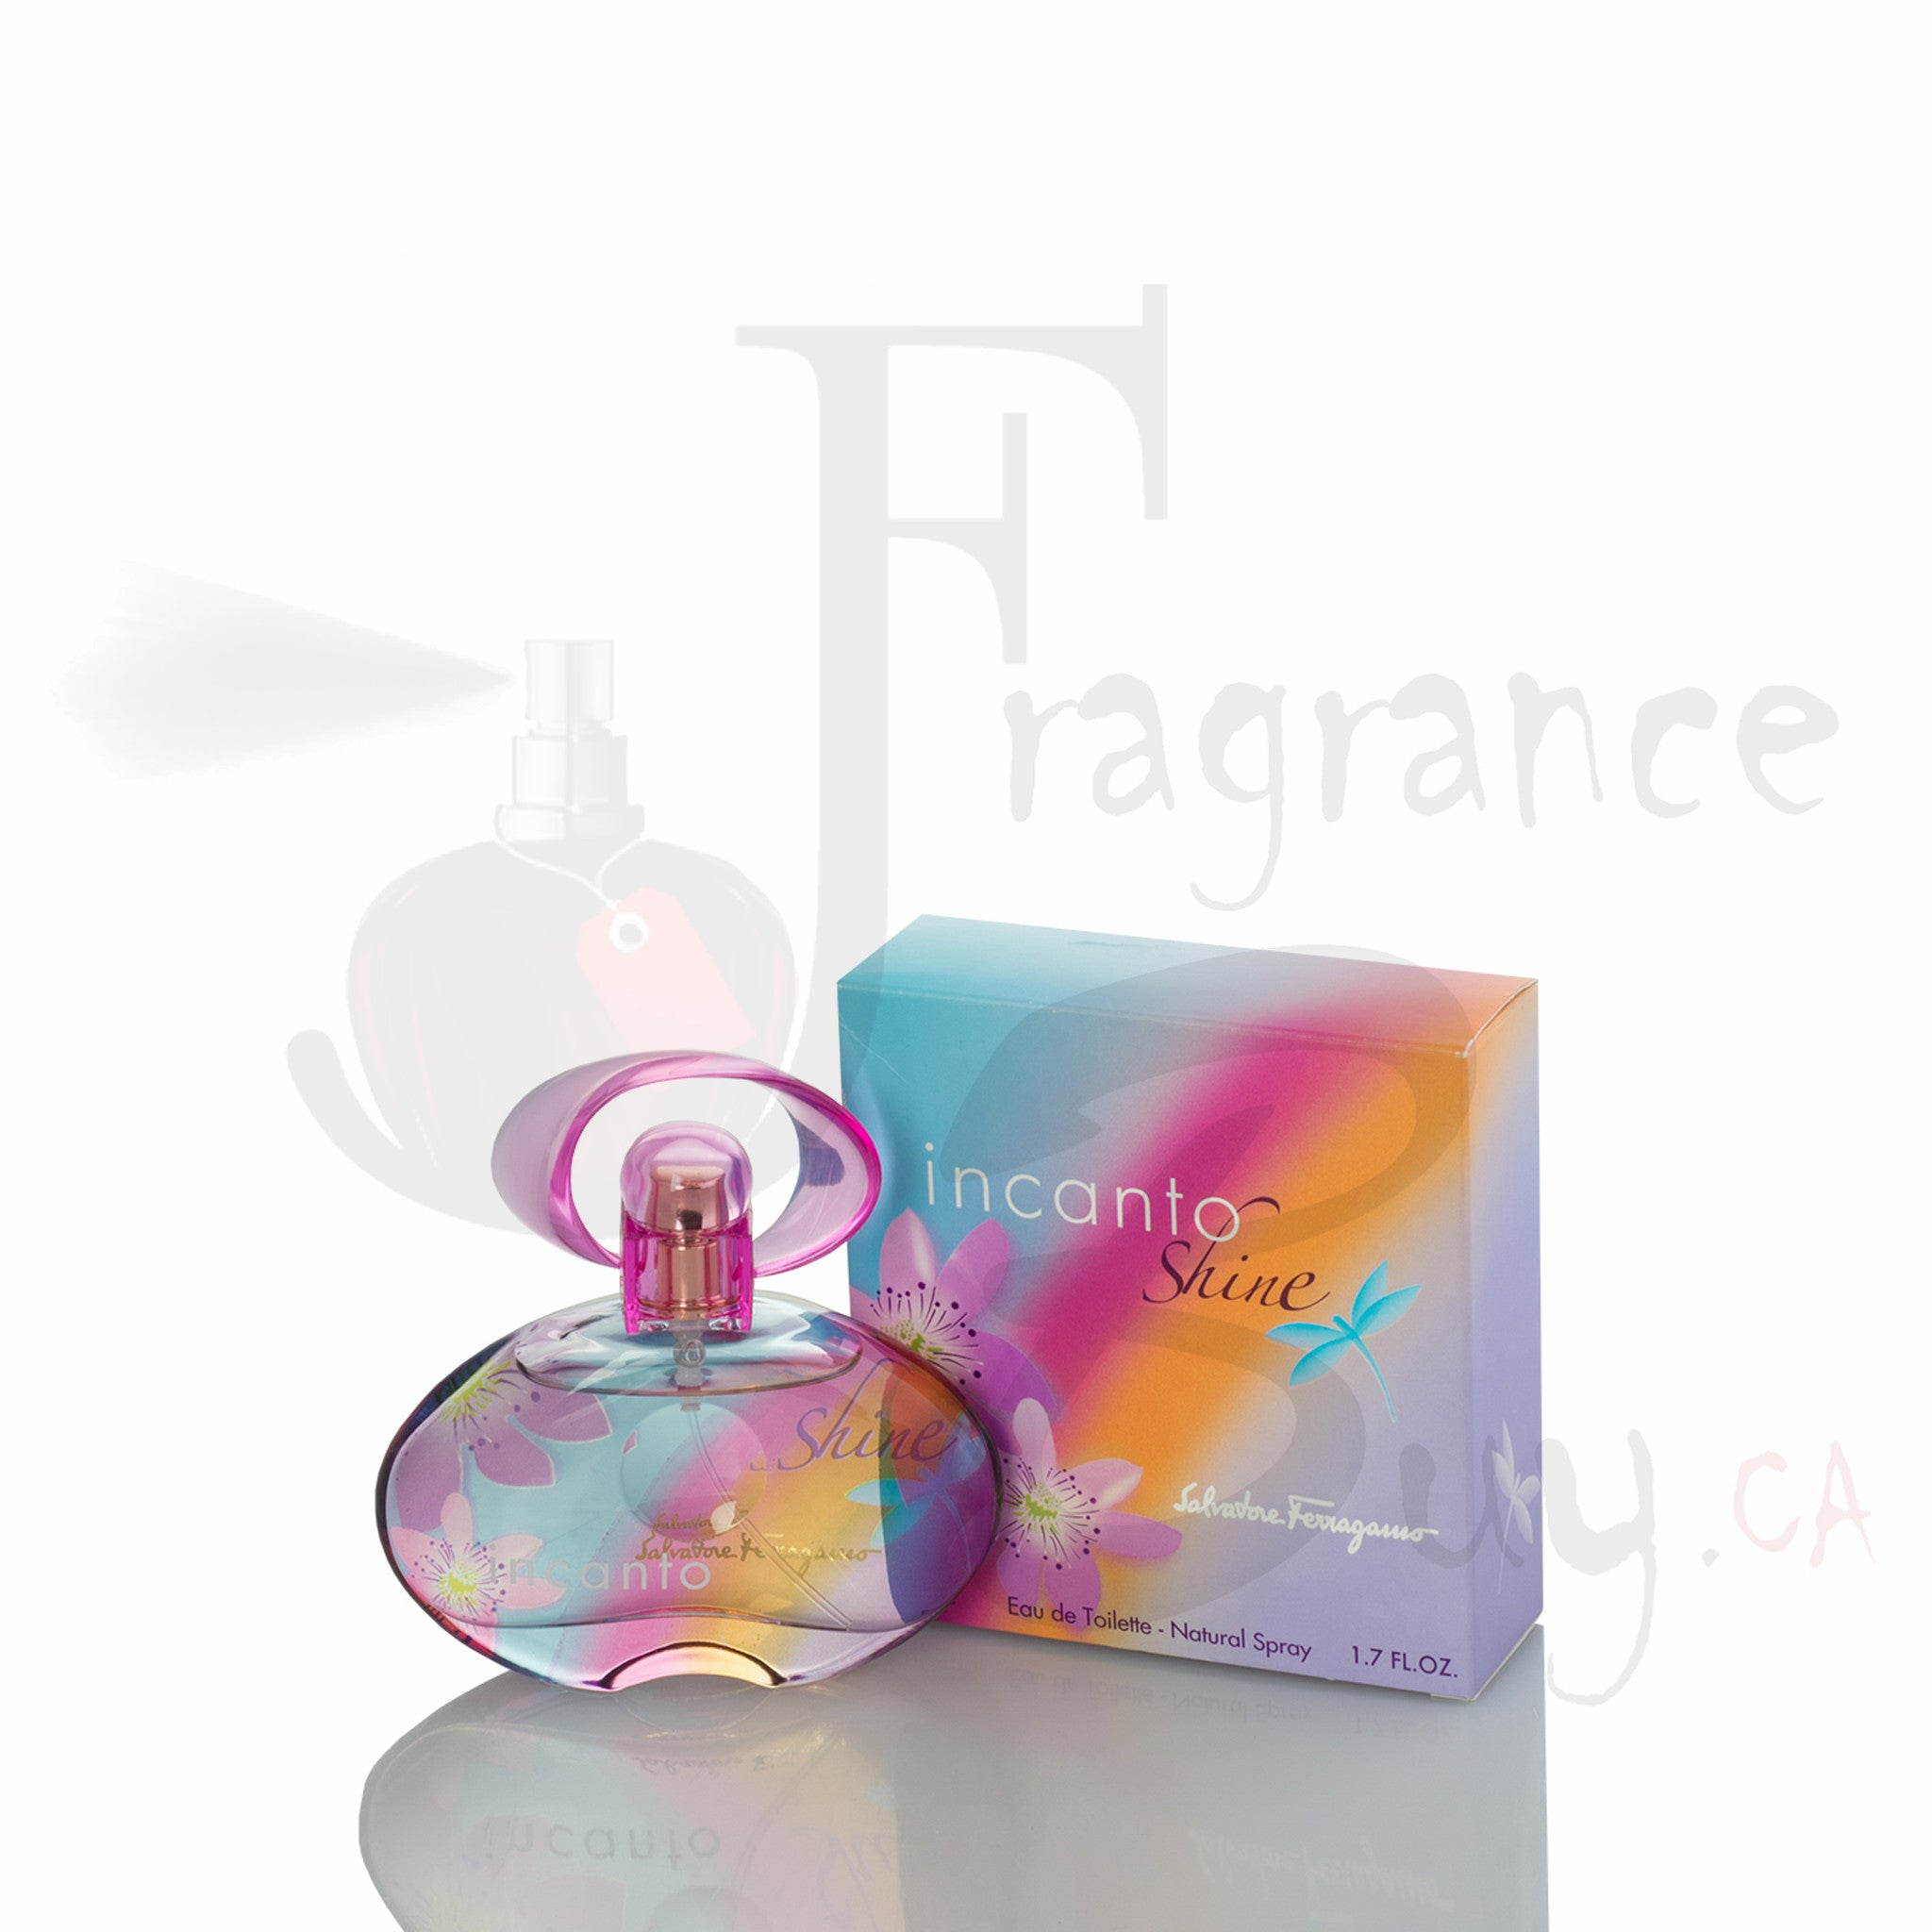 Salvatore Ferragamo Incanto Shine For Woman